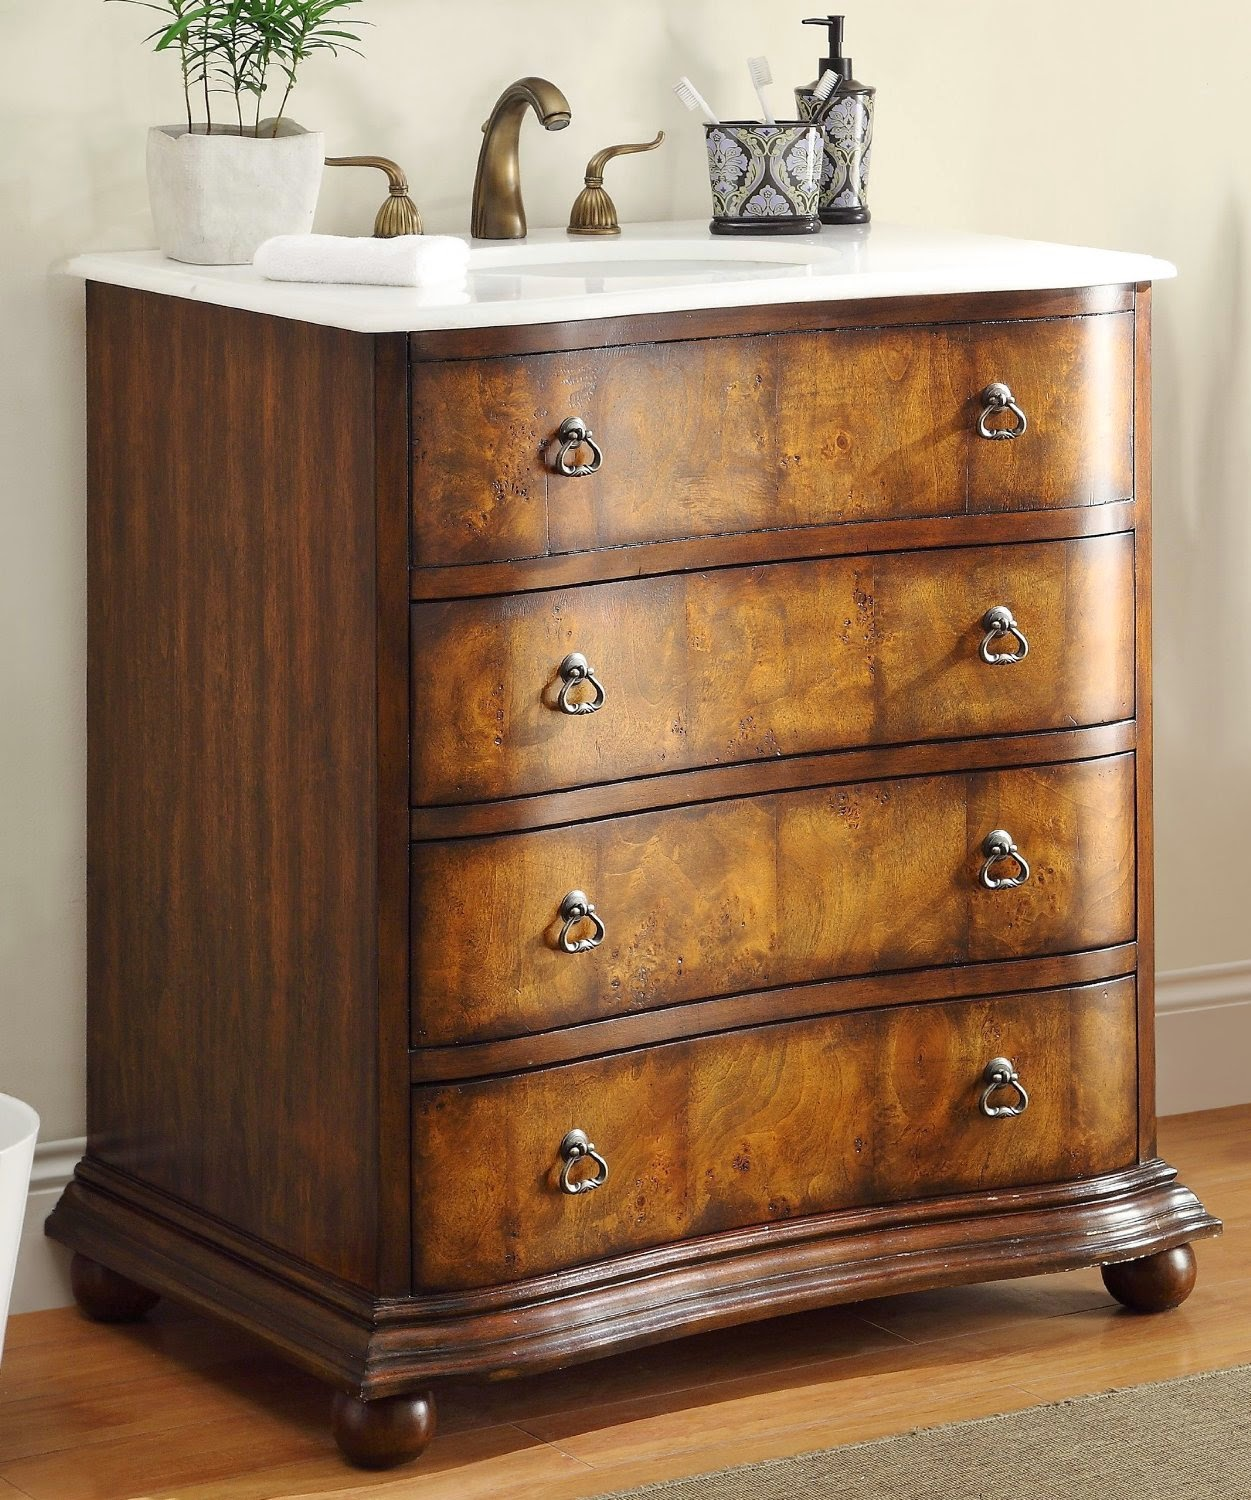 Discount Bathroom Vanities: Antique Bathroom Vanities ...